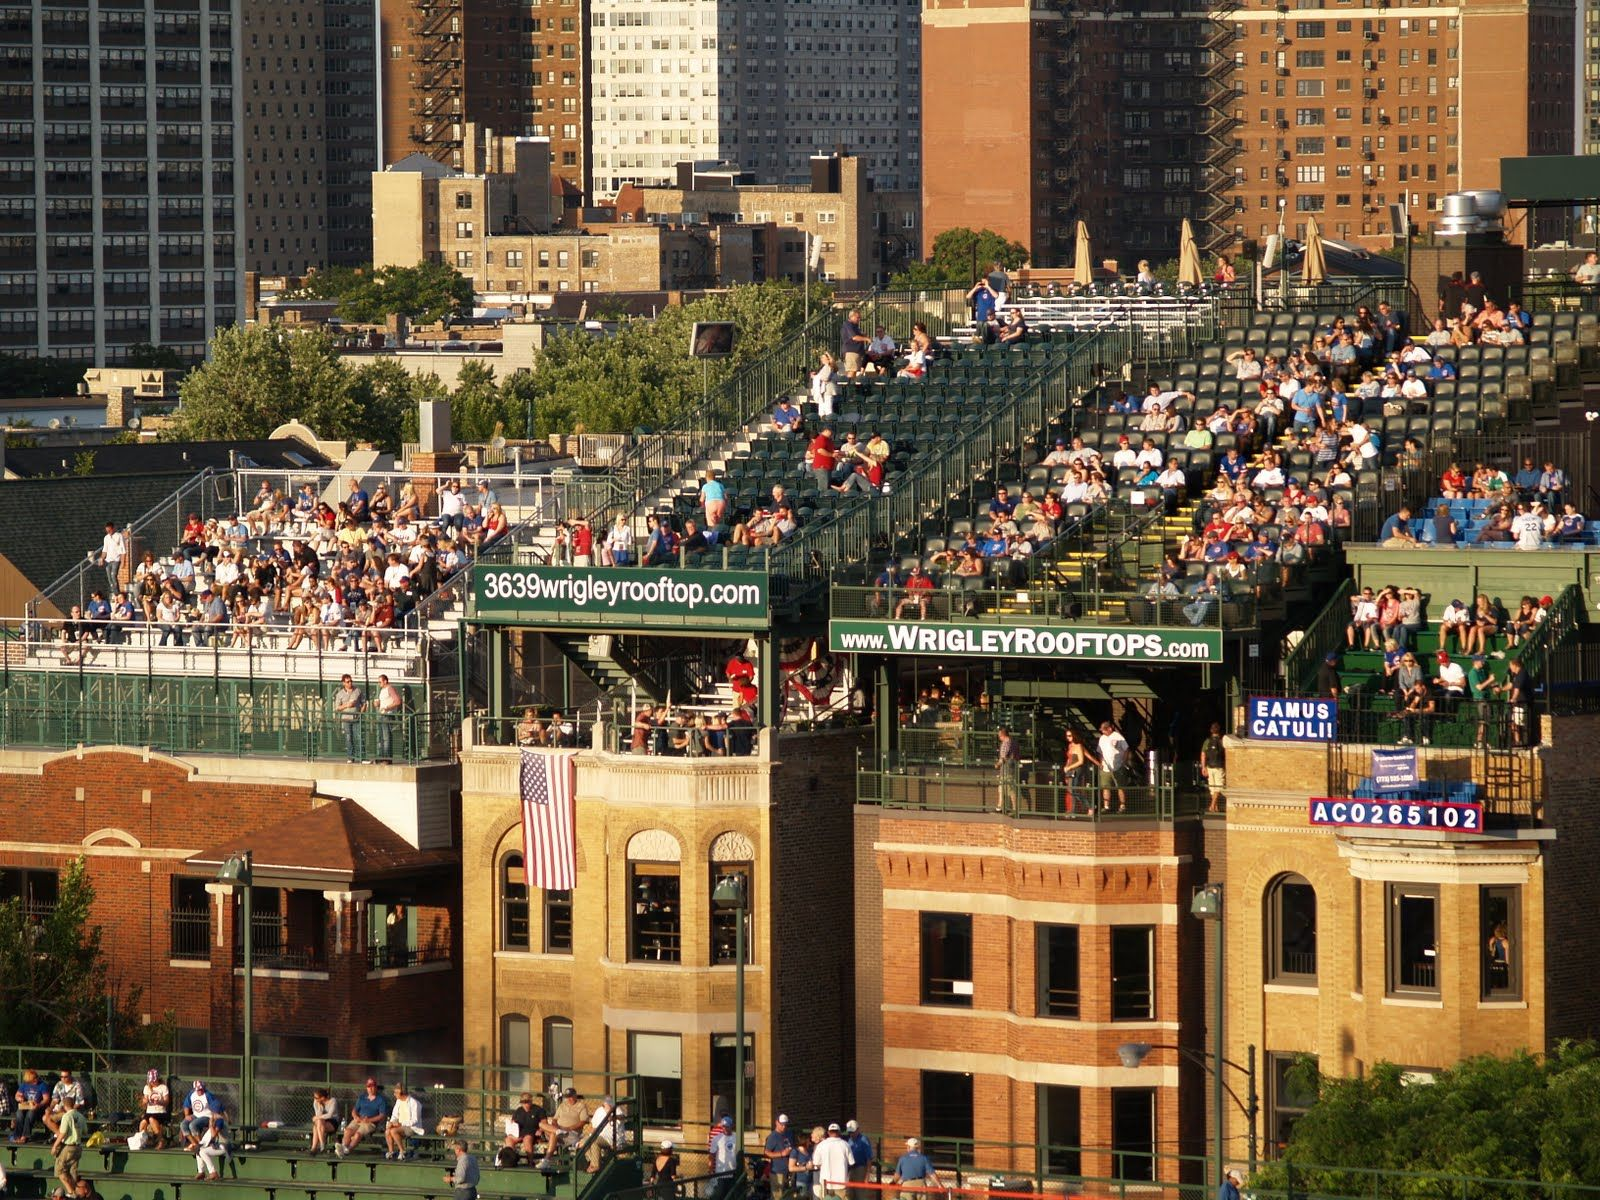 Wrigley Field Rooftop Seating Private Residences Only In Chicago Wrigley Field Rooftops Wrigley Field Wrigley Field Chicago